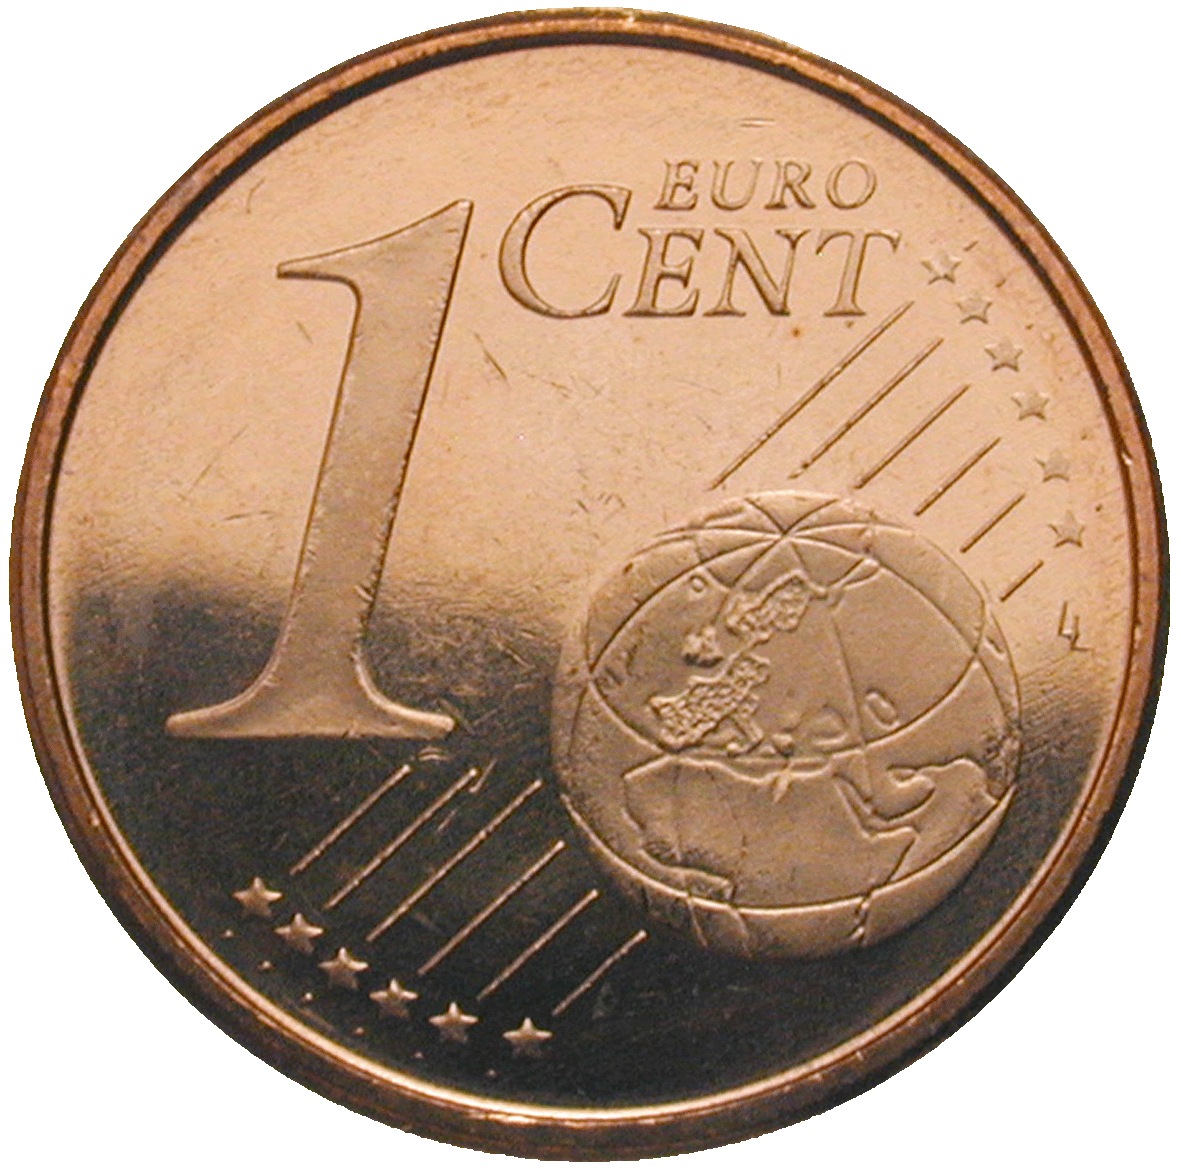 Kingdom of Spain, Juan Carlos, 1 Euro Cent 2004 (reverse)